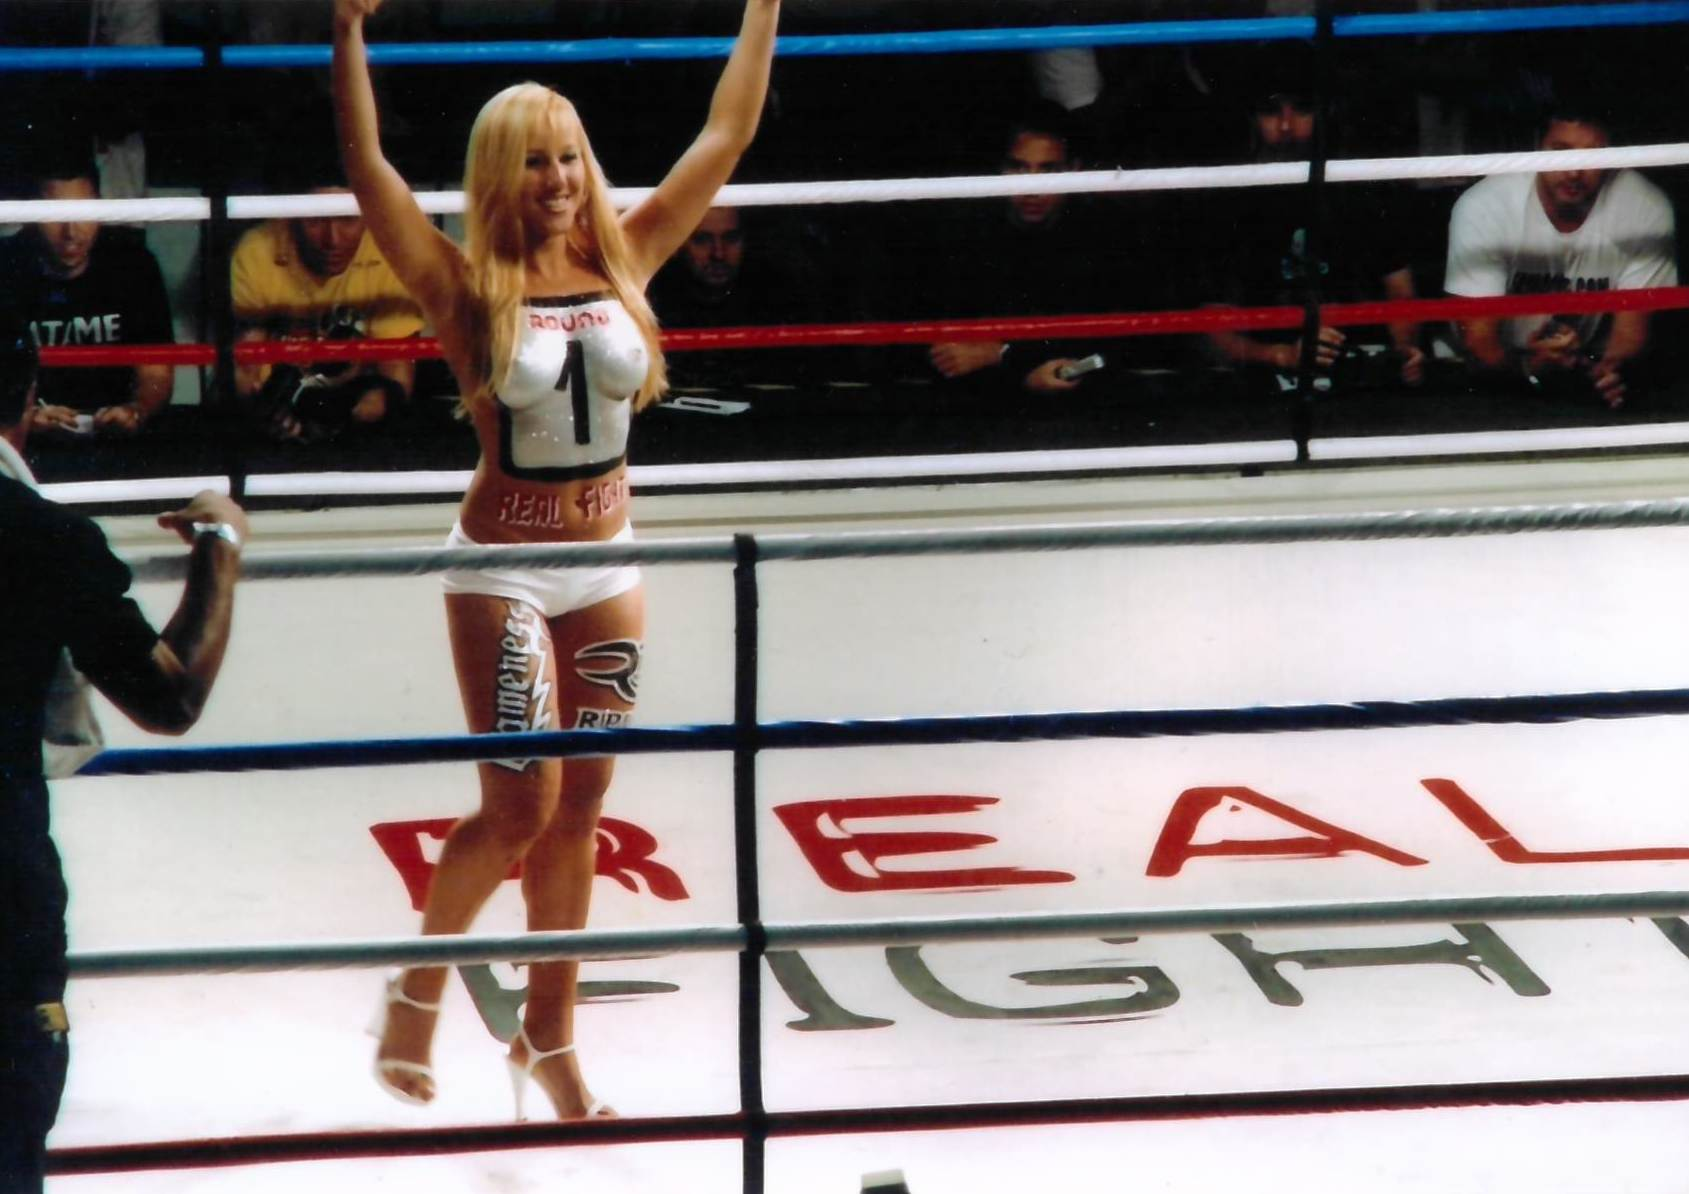 33 - Ring Girls